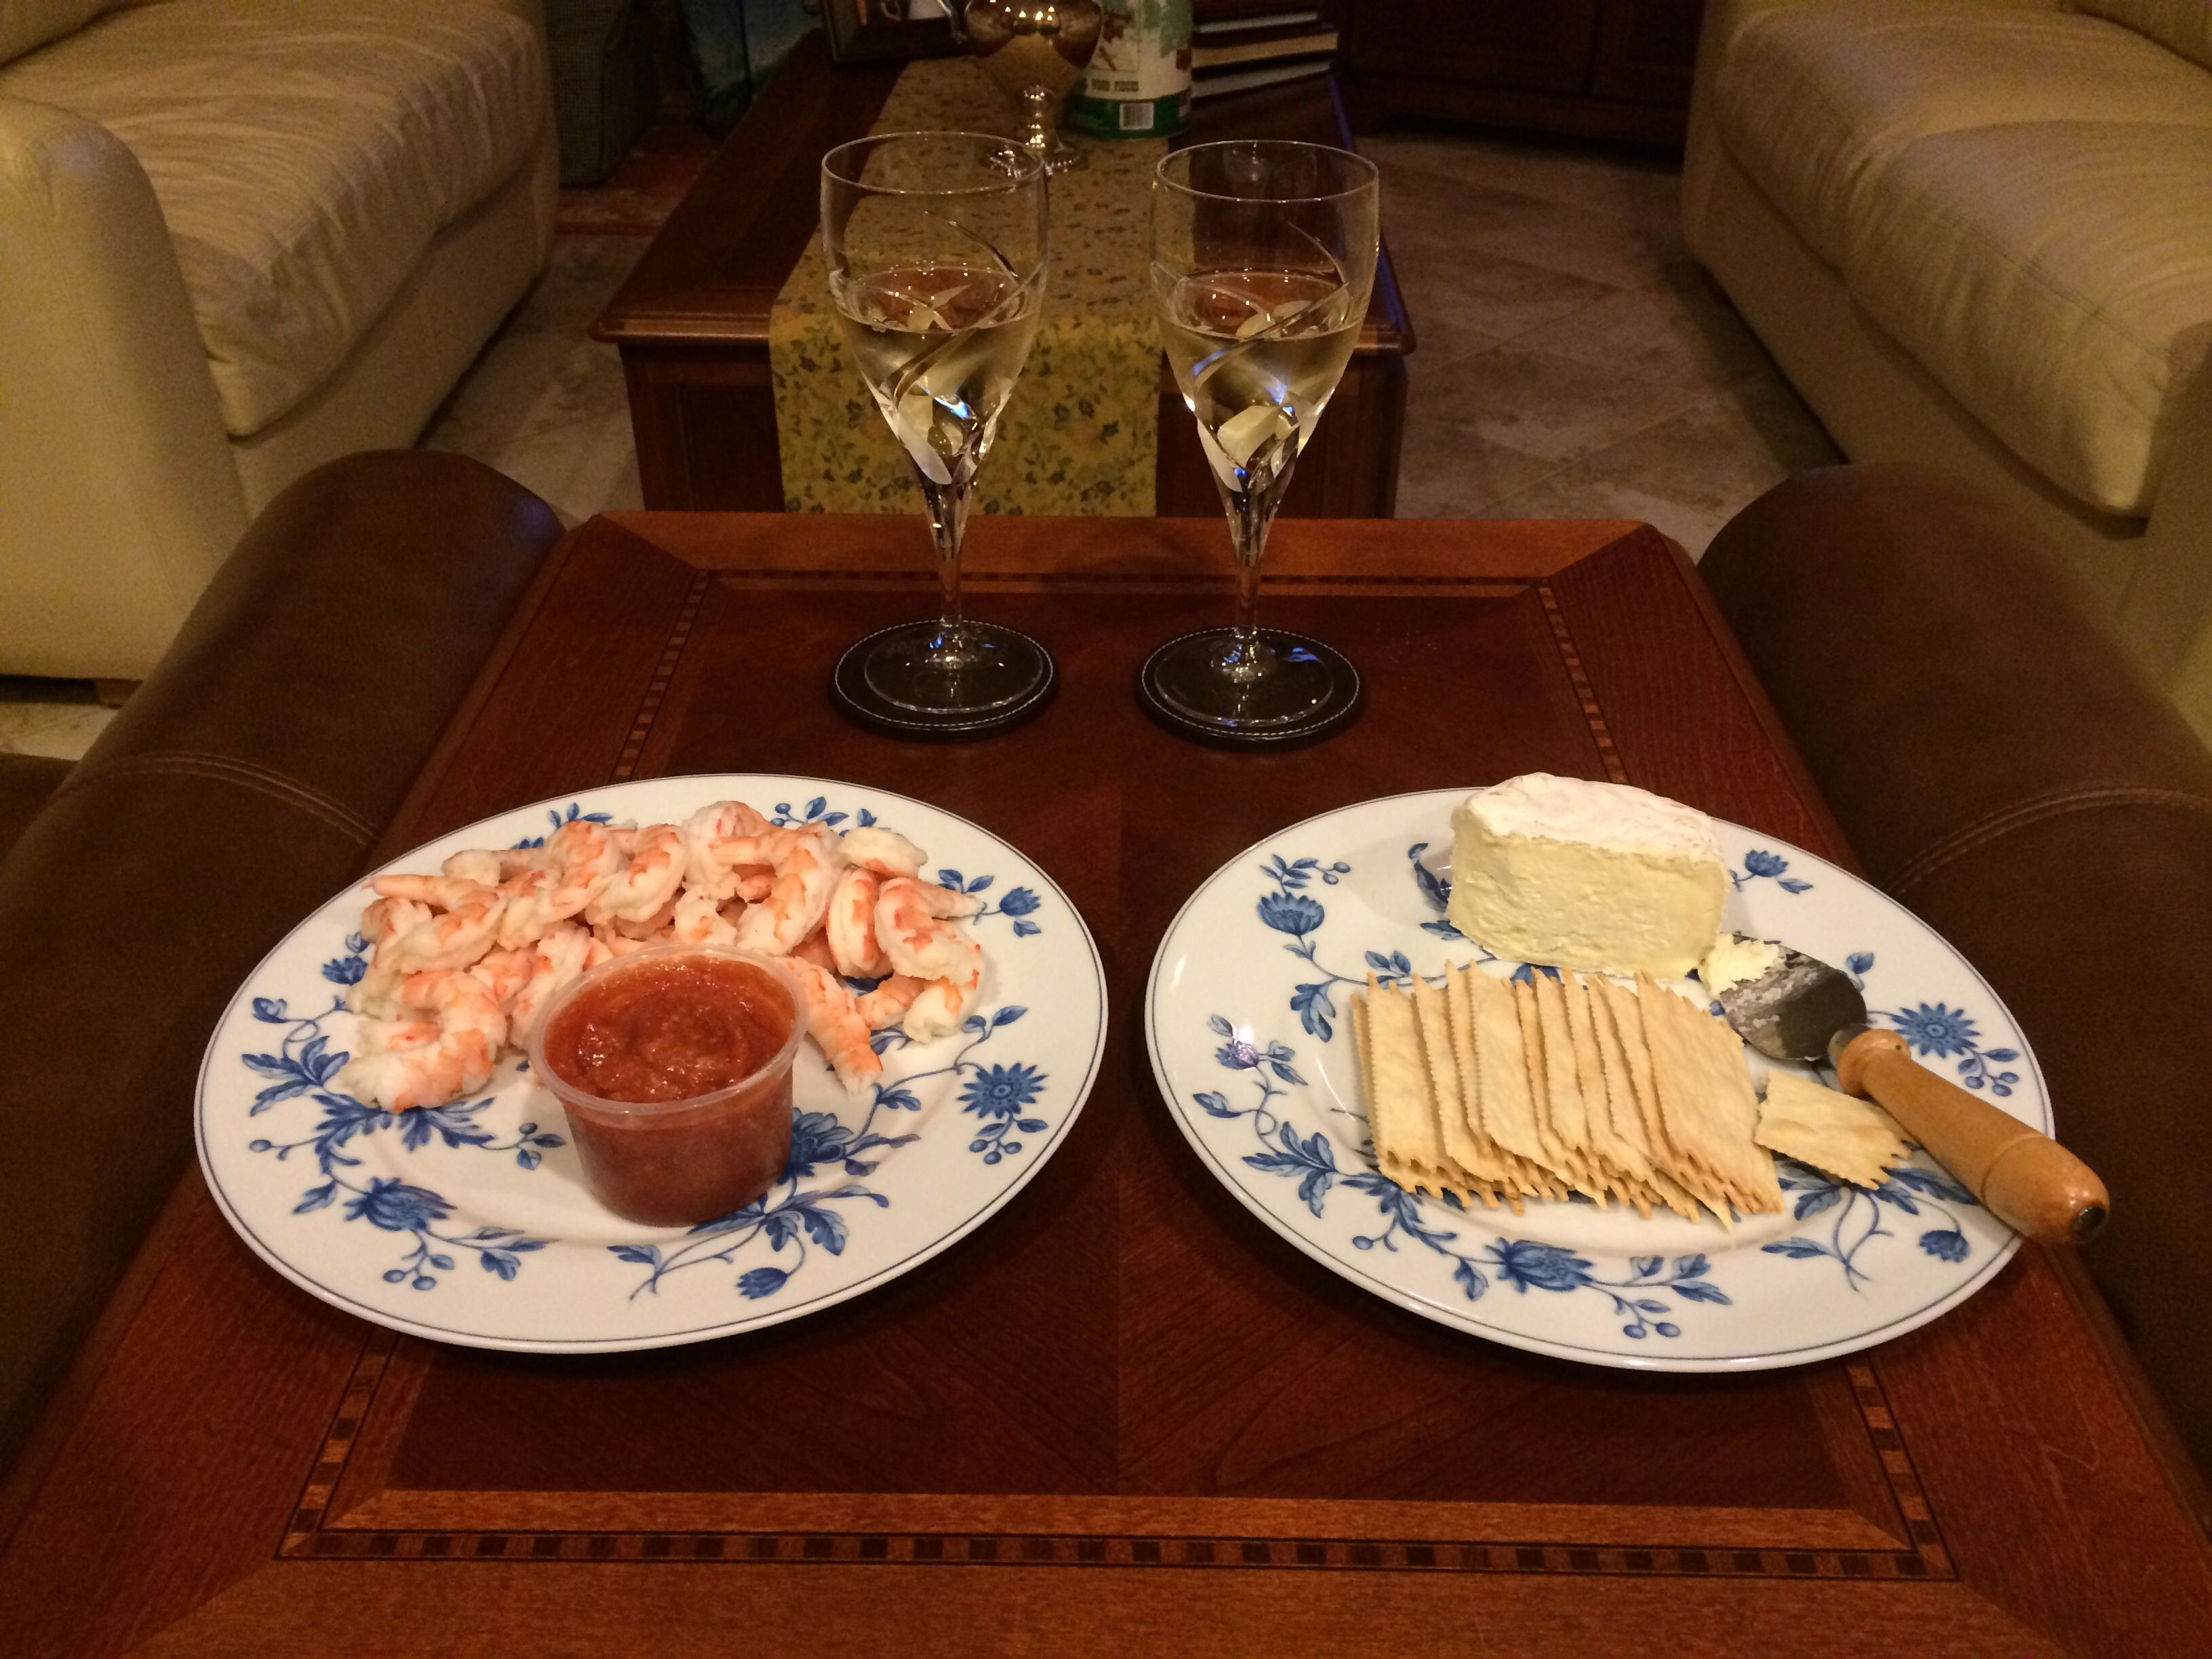 Sometimes dinner is shrimp cocktail with spicy cocktail sauce, Cowgirl Creamery triple cream cheese, crackers, and Bonterra Chardonnay. Simple and yummy!